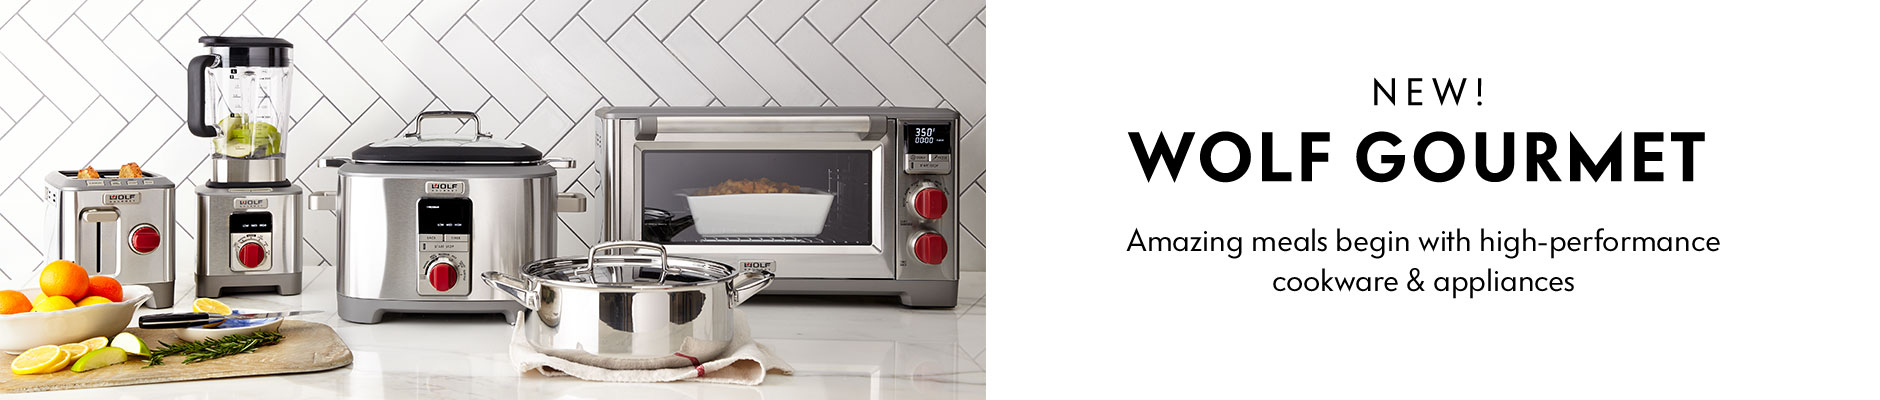 New! Wolf Gourmet - Amazing meals begin with high-performance cookware & appliances